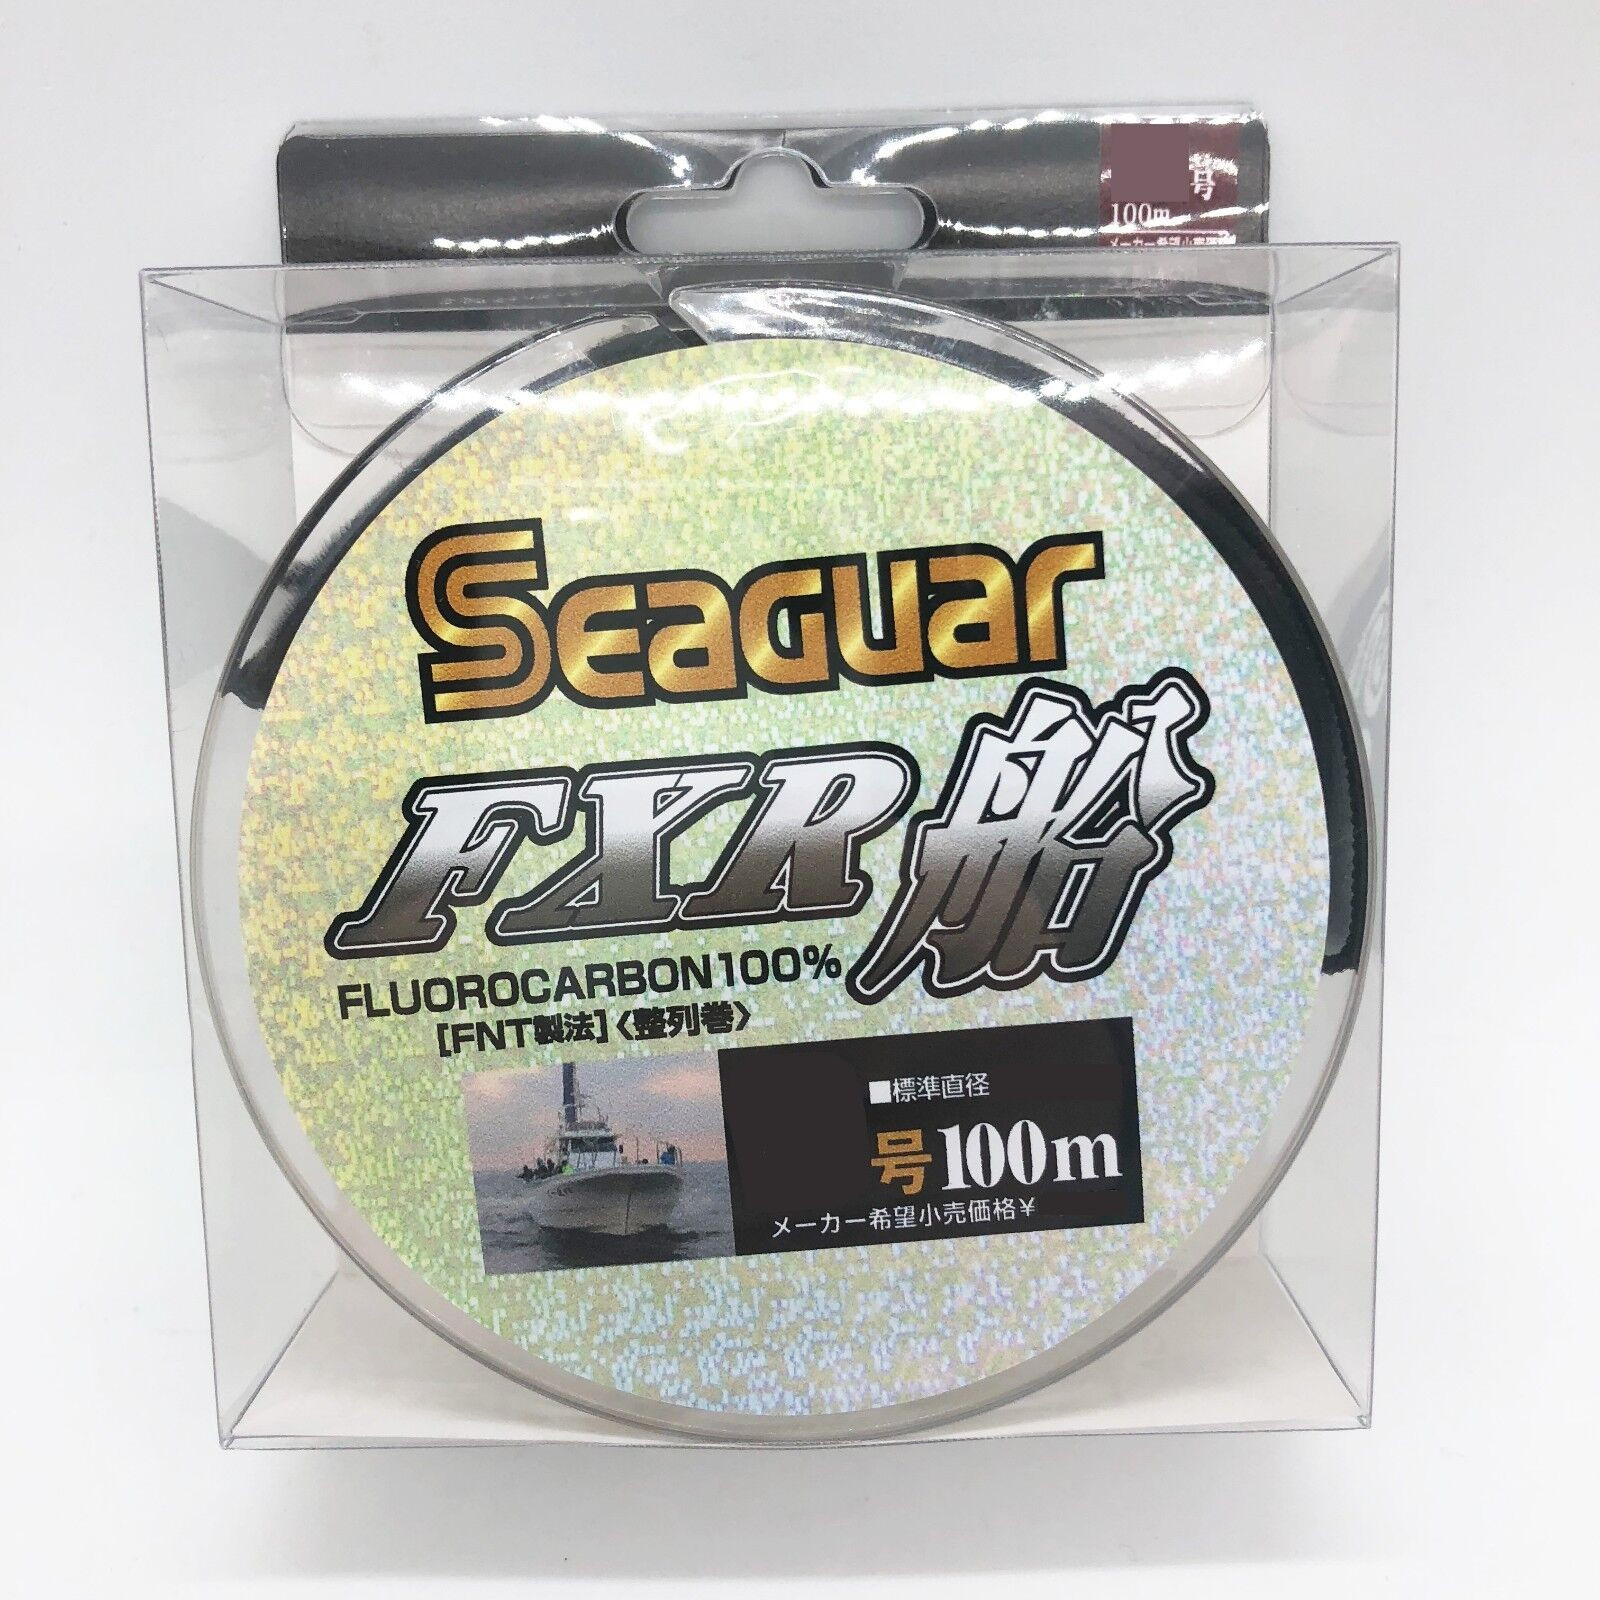 Seaguar FXR Fluoroautobon Leader 100m Select Line Weight